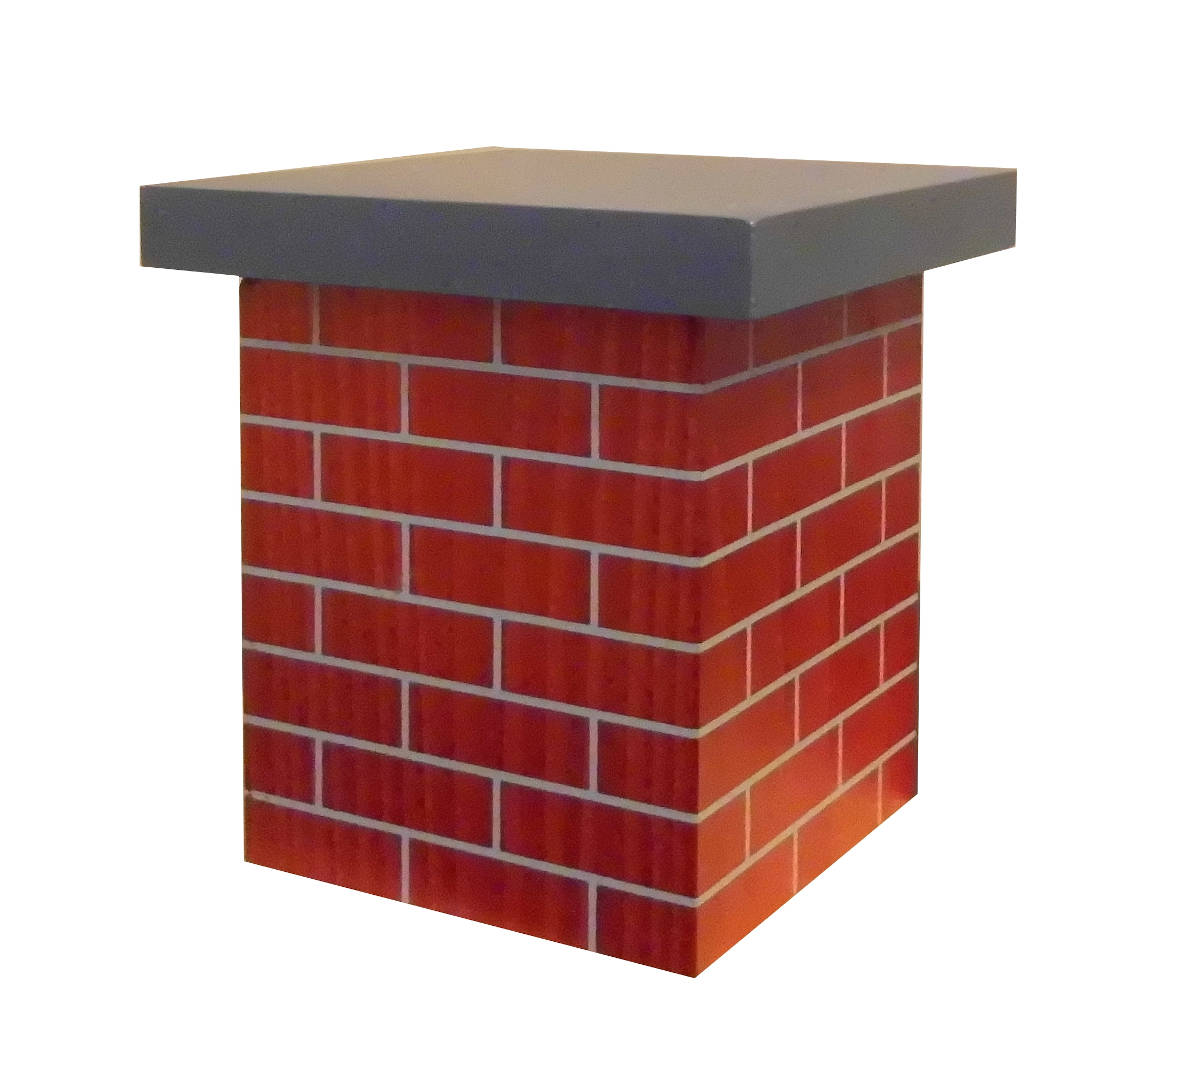 75811 Chimney for Sitting Smokers